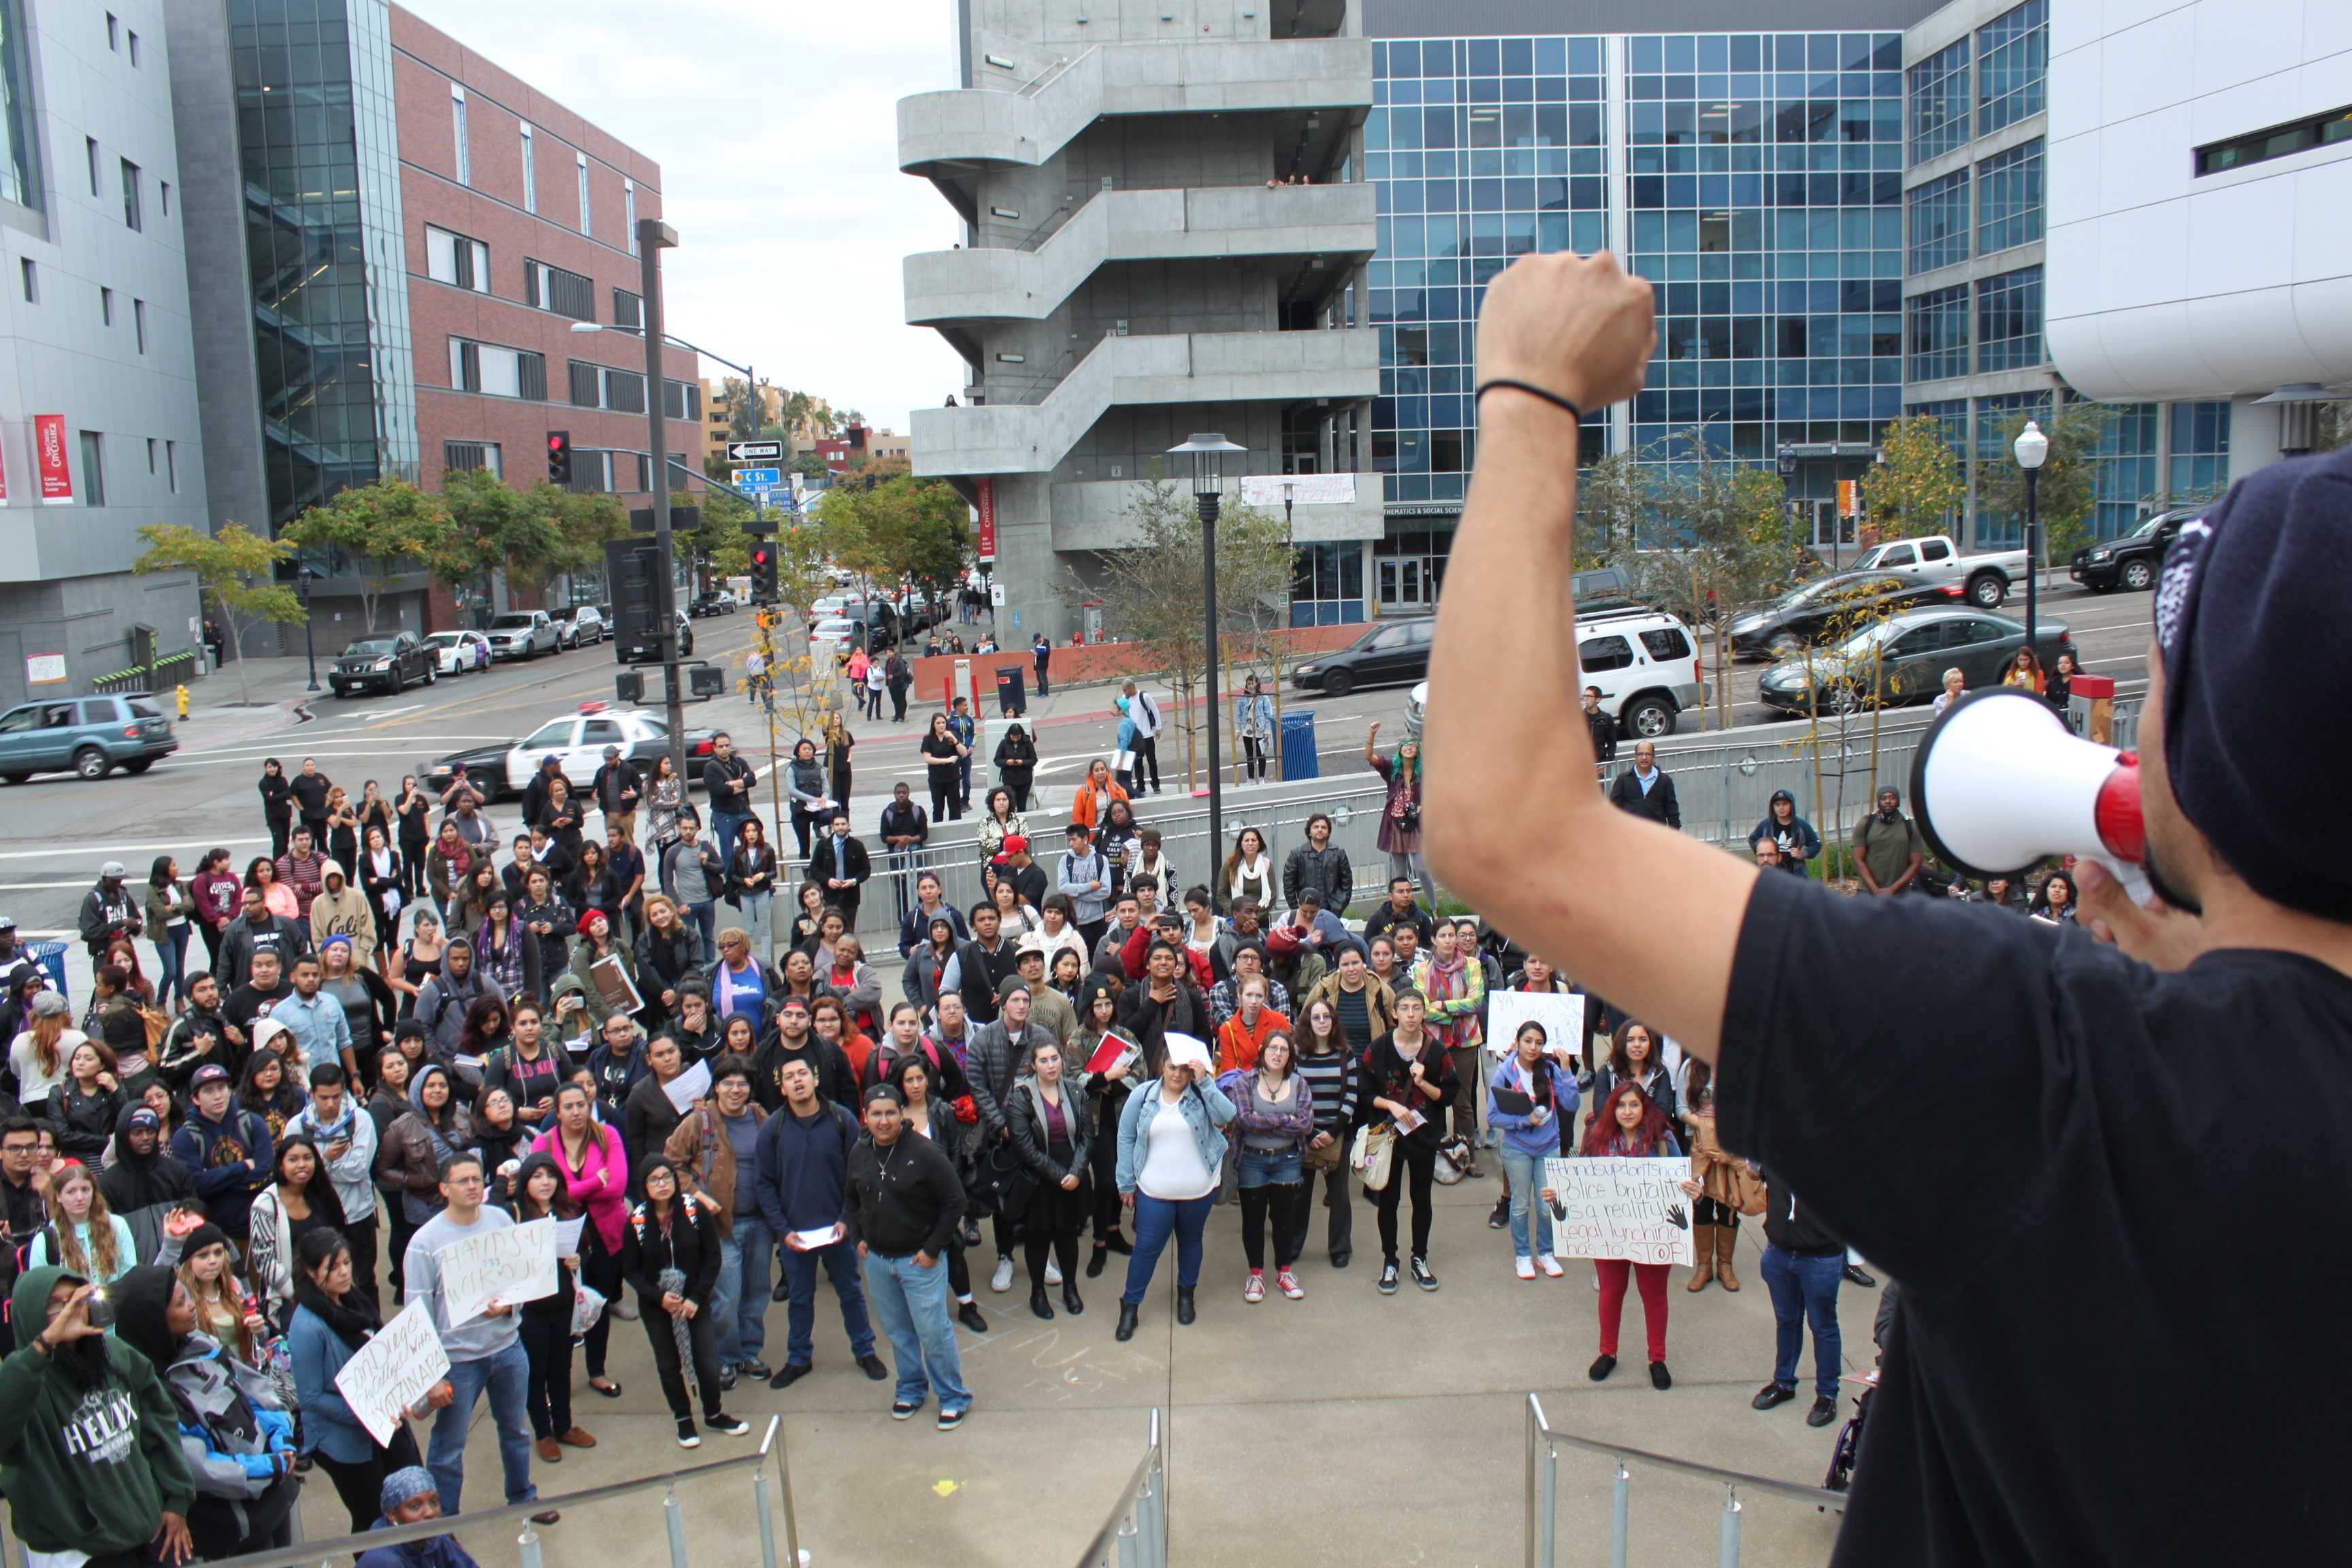 """Student and Students in Power member Tony Perez raises his fist, leading the crowd that gathered in the BT Plaza in a chant of """"We won't take it anymore,"""" referring to recent officer-involved deaths that have and haven't made national news. Photo credit: Miguel Cid"""